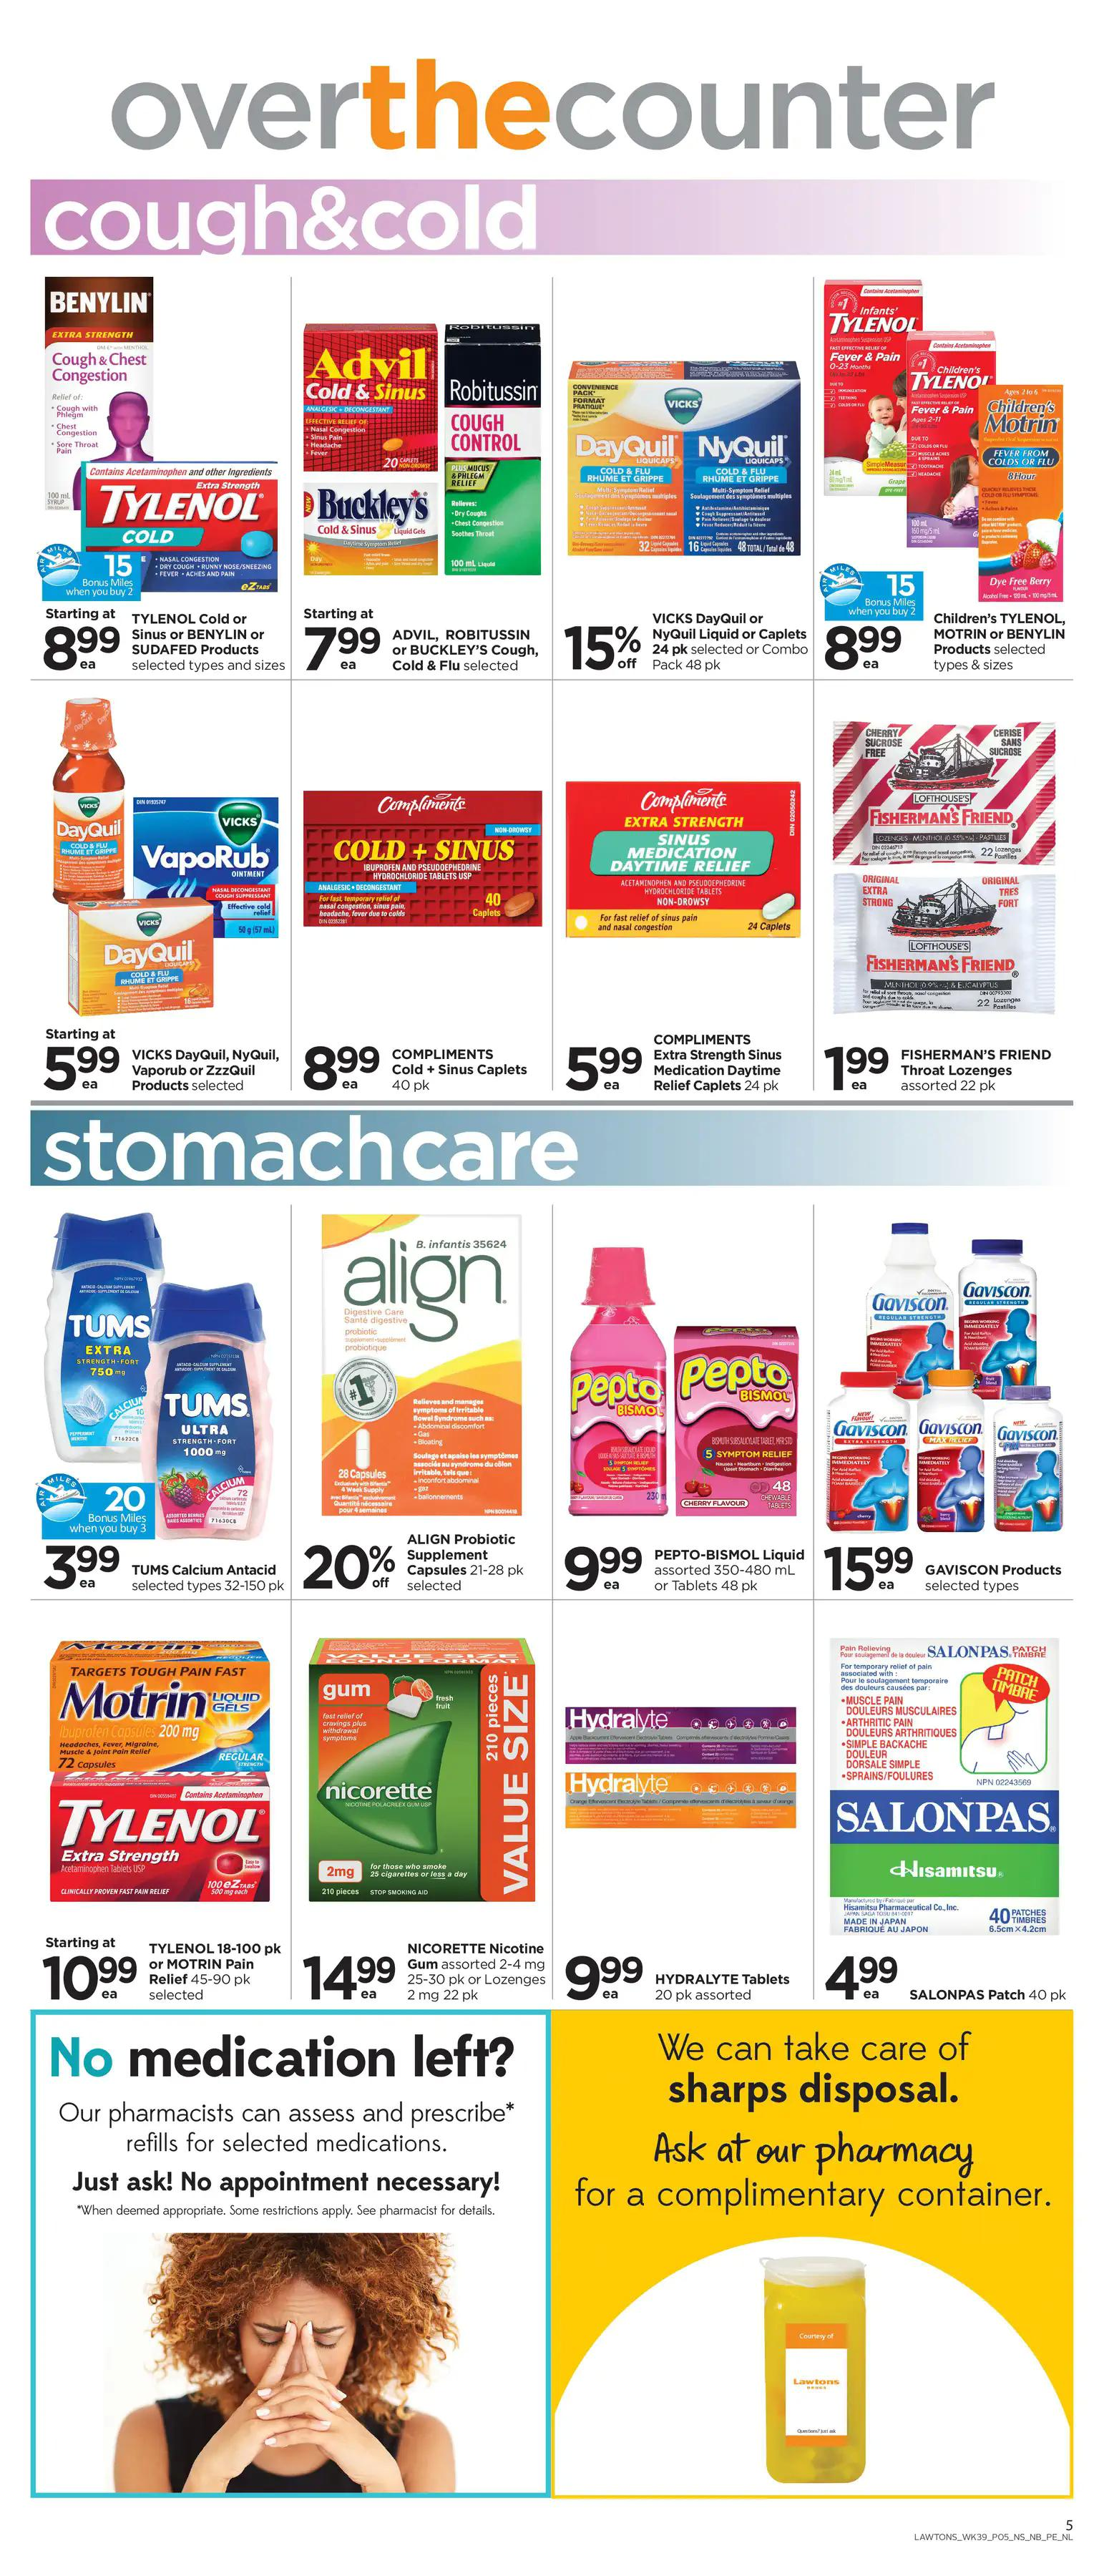 Lawtons Drugs - Weekly Flyer Specials - Page 4